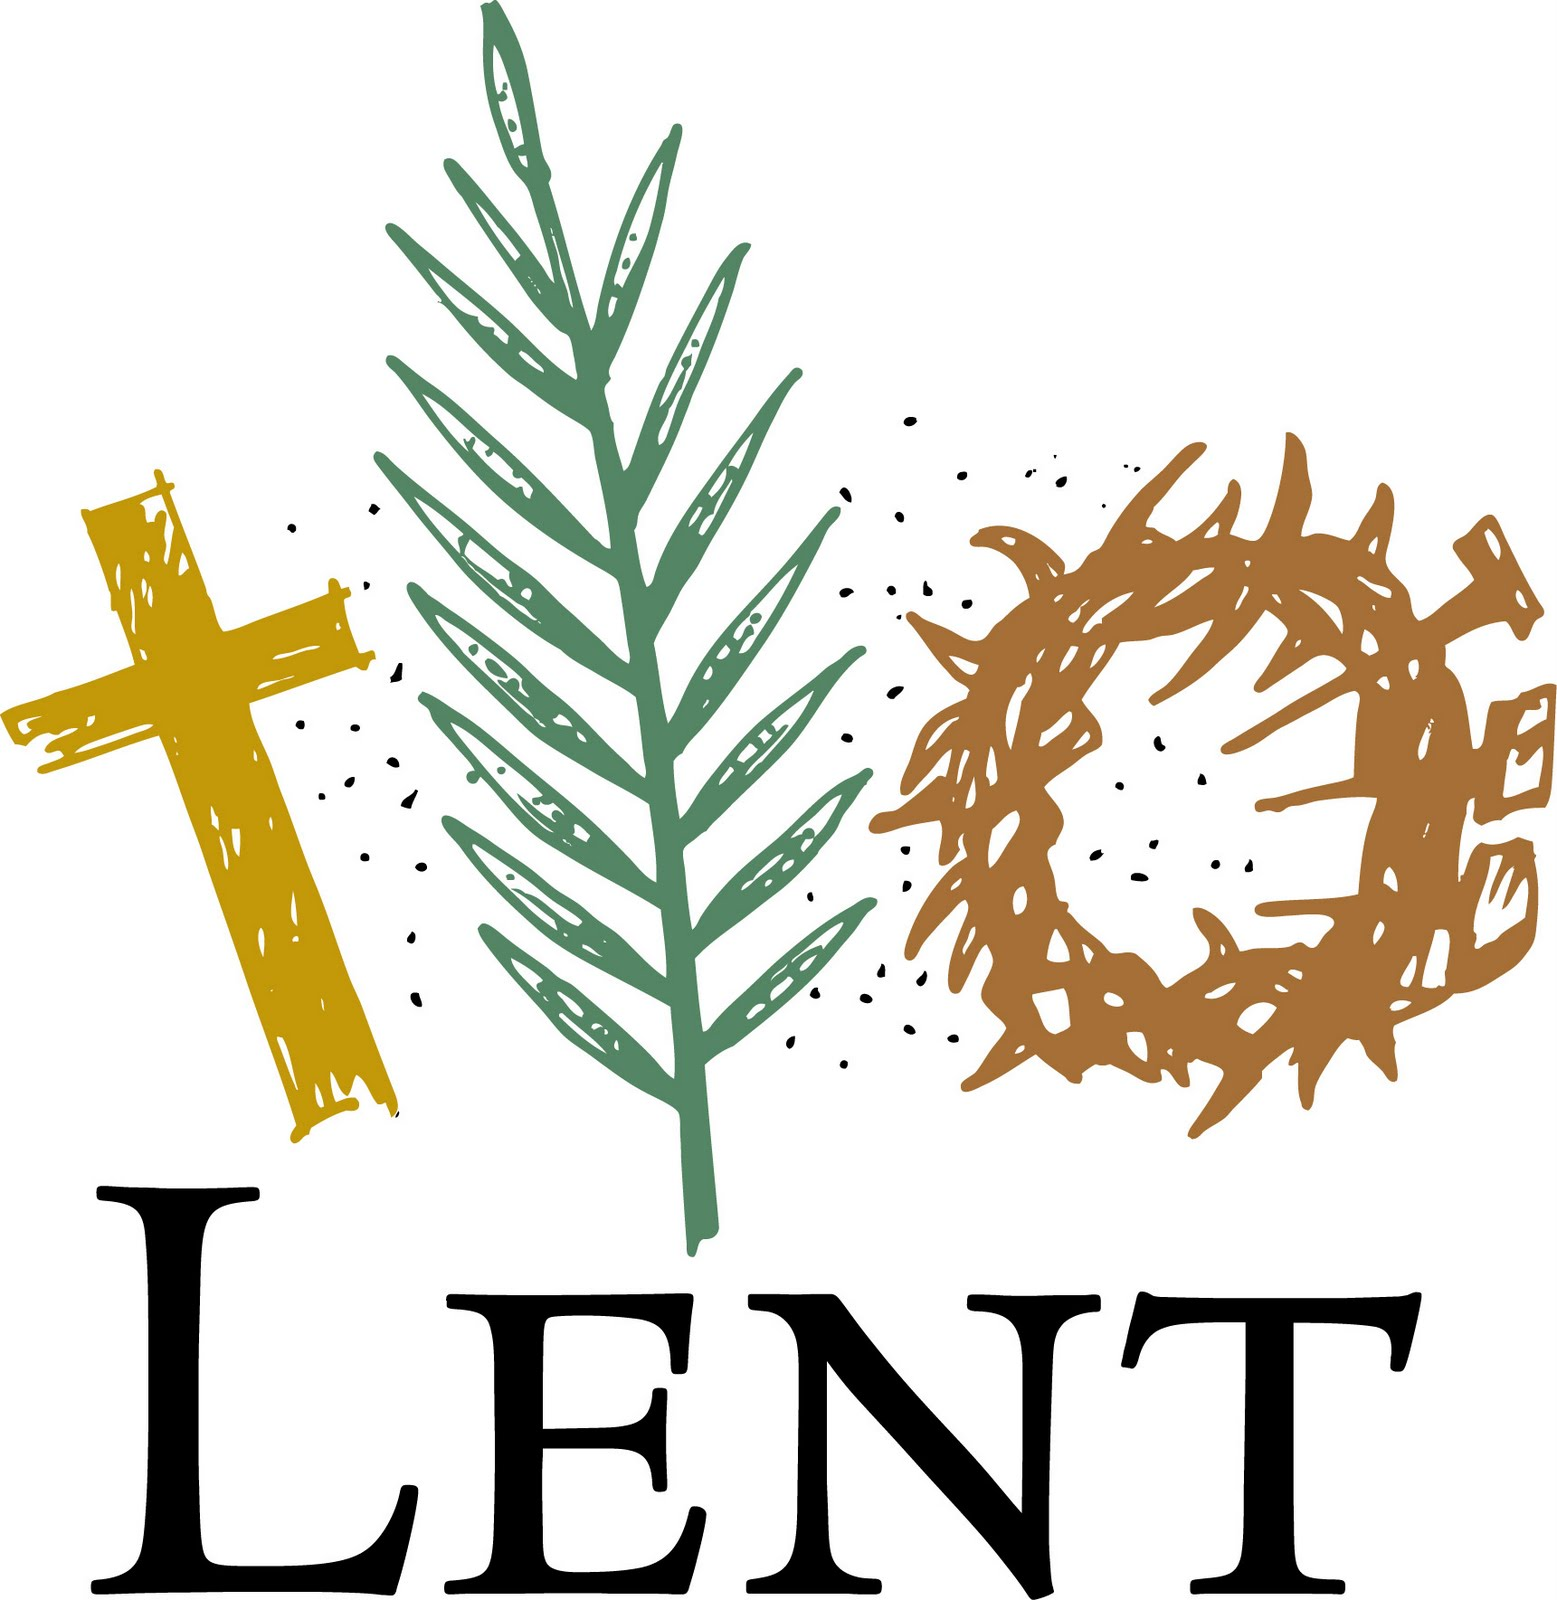 1000+ images about Lent on Pinterest.